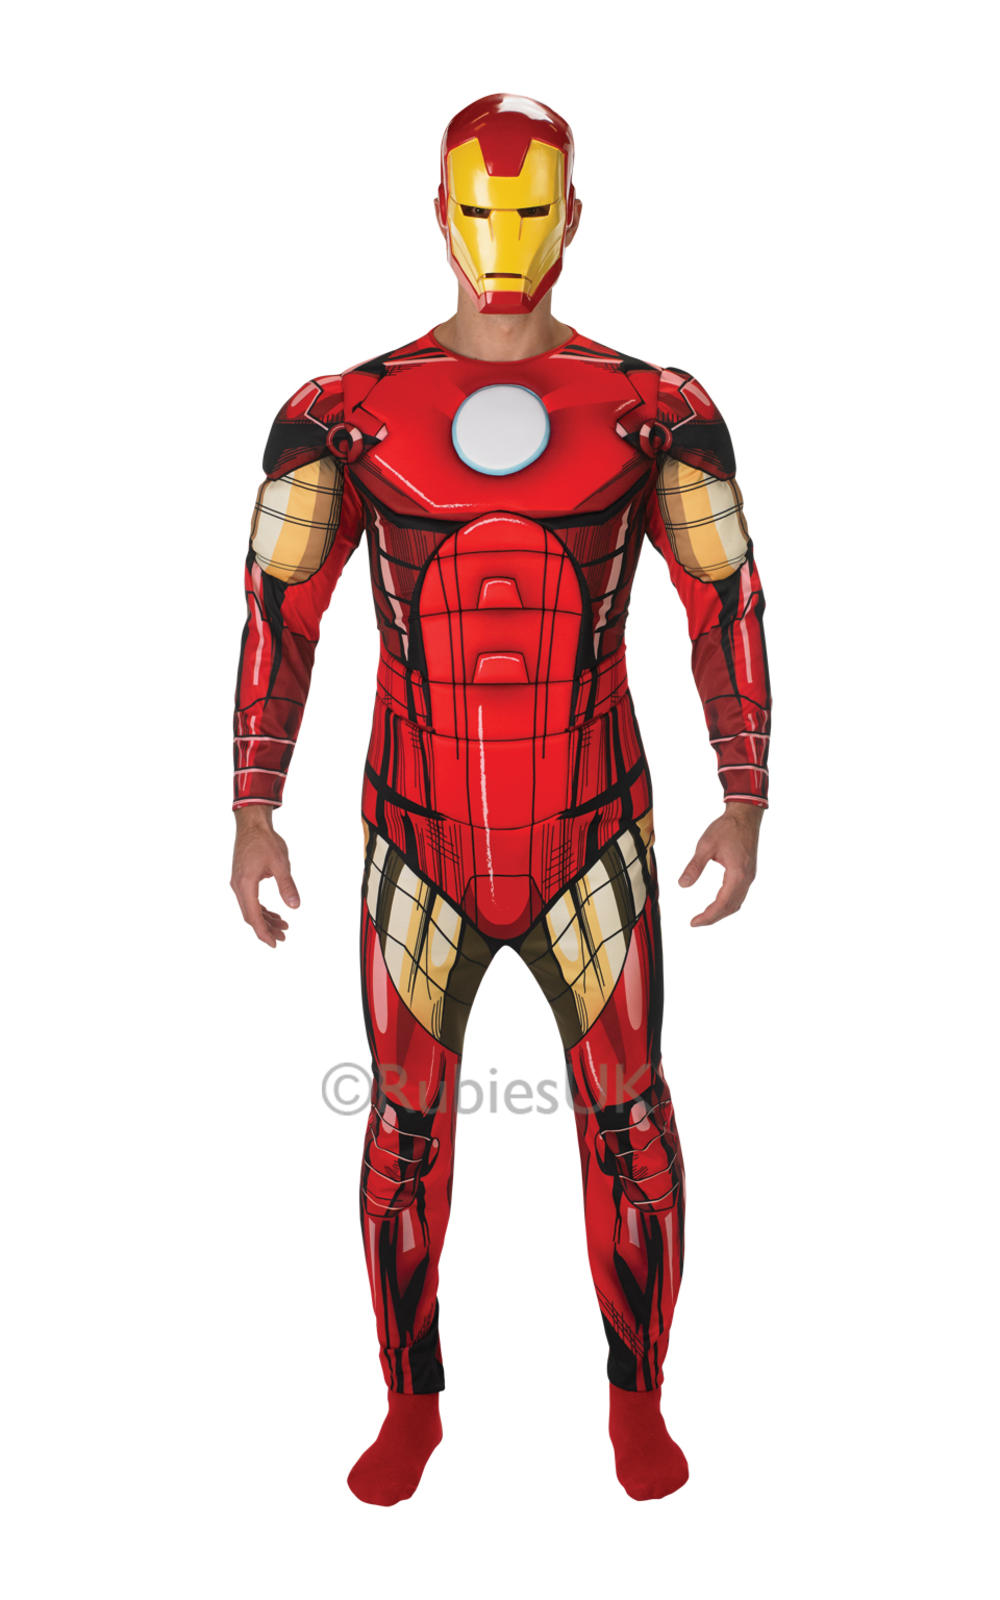 Deluxe Iron Man + Mask Mens Fancy Dress Avengers Superhero Adults Costume Outfit